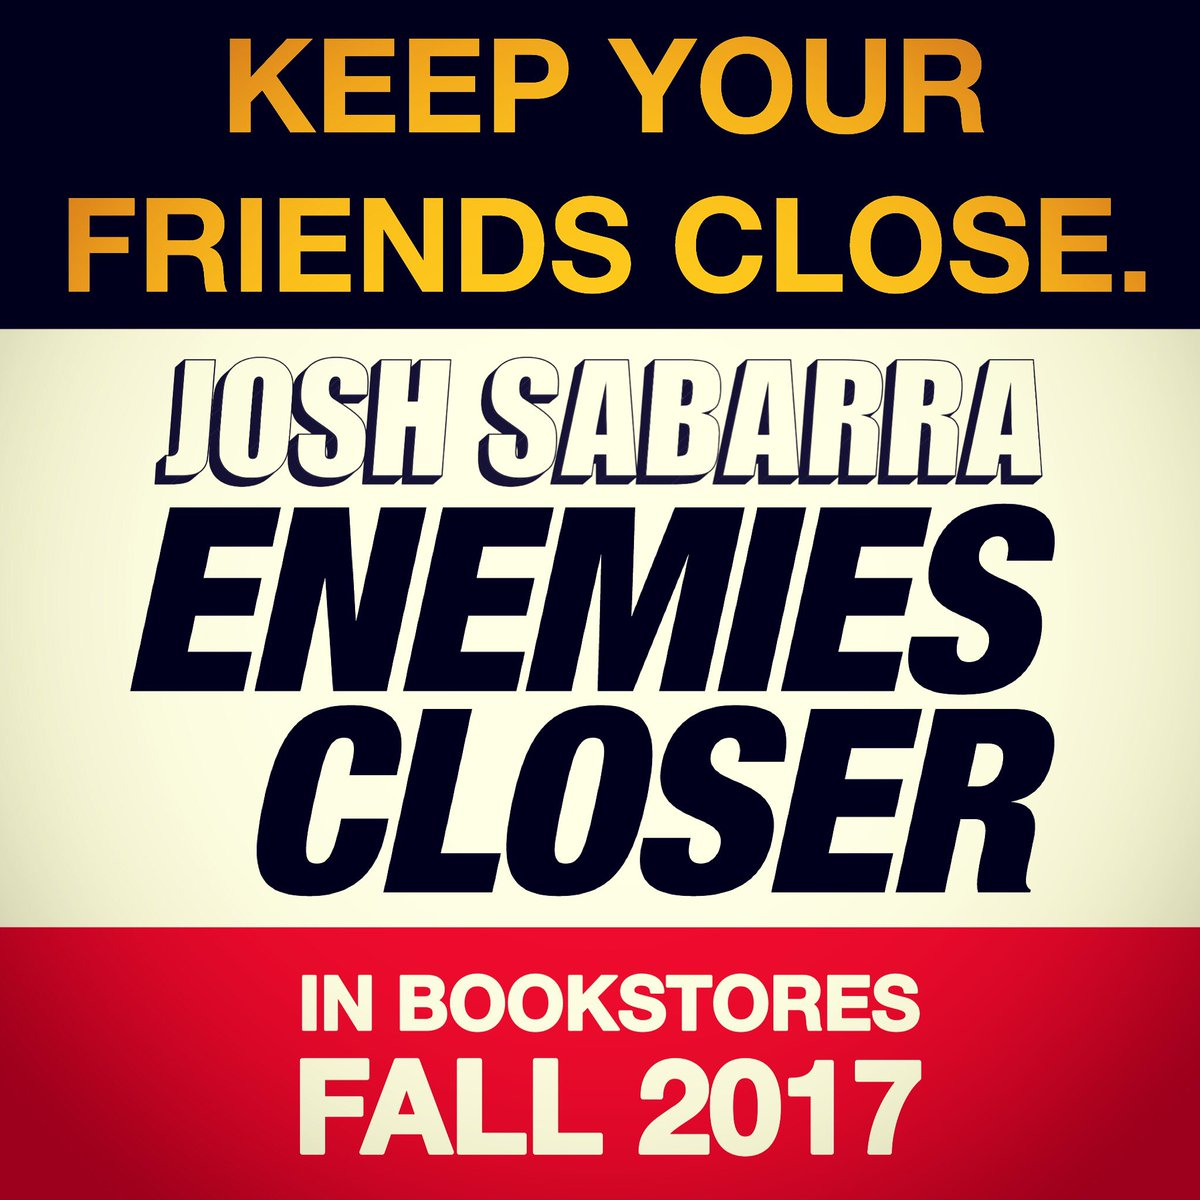 This fall, keep your friends close. #EnemiesCloser #books #reading #author #novel #bookclub #bookstore #goodreads #Hollywood #entertainment<br>http://pic.twitter.com/qQmnQFd0l6